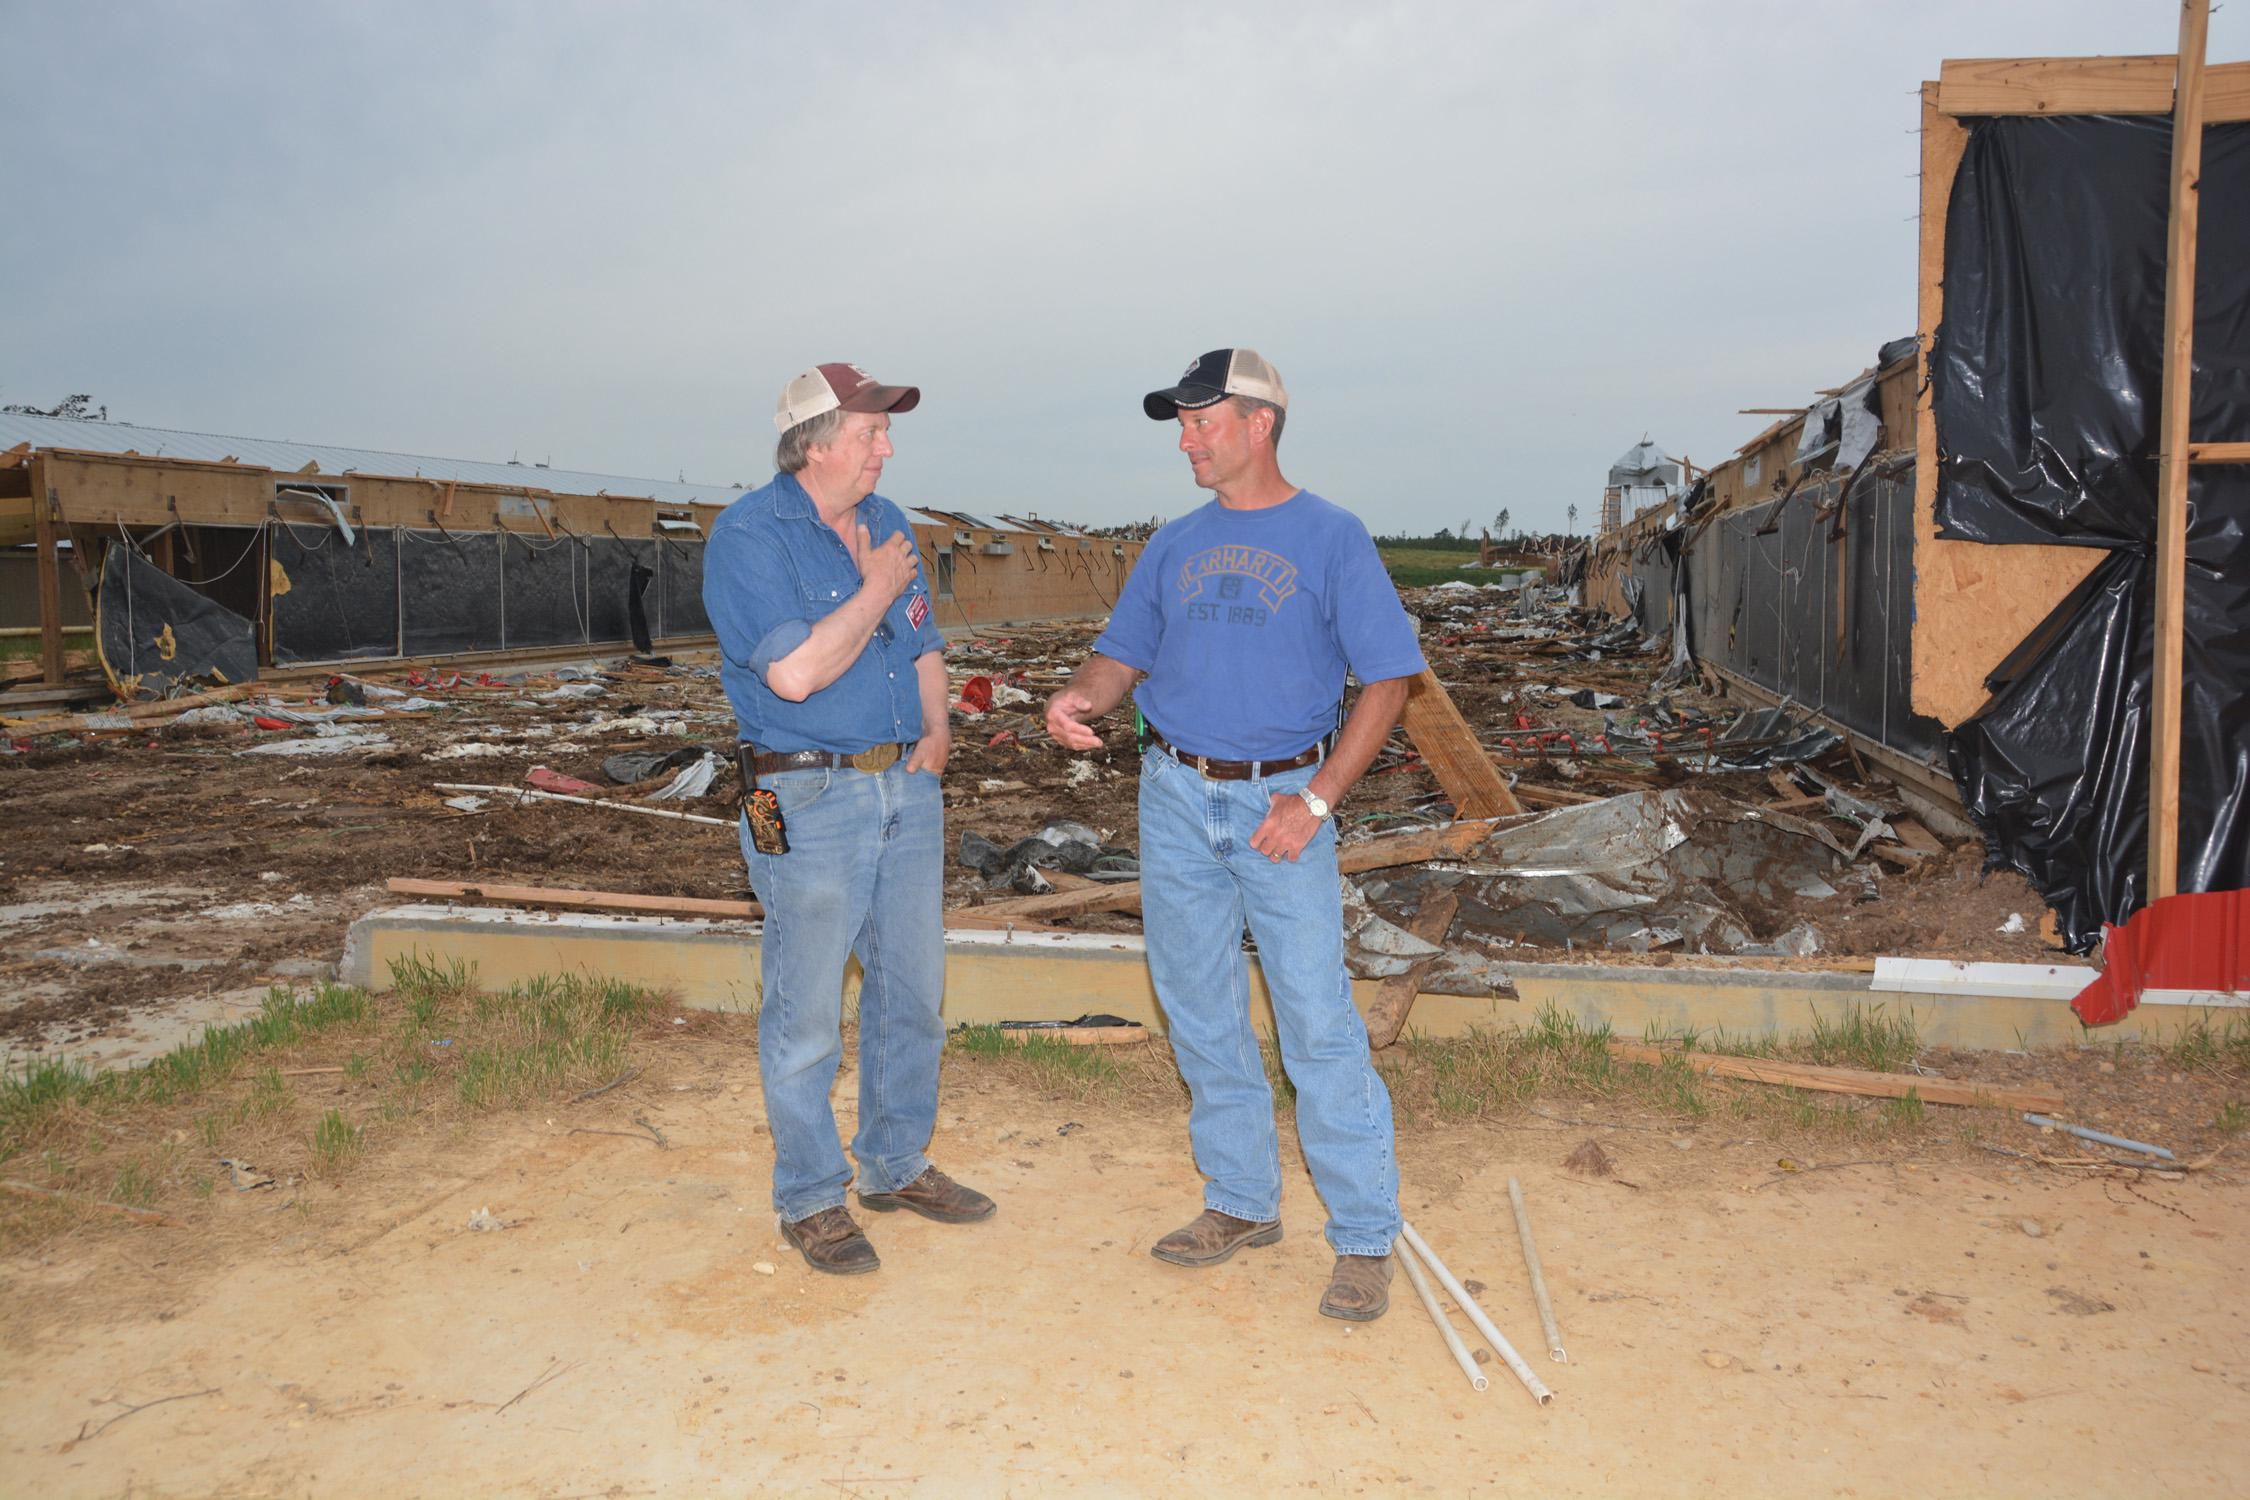 Mississippi State University Extension Service poultry specialist Tom Tabler, left, visits with Winston County poultry grower Tim Hobby on May 8, 2014. Hobby lost 10 broiler houses in the April 28 tornado. (Photo by MSU Ag Communications/Linda Breazeale)